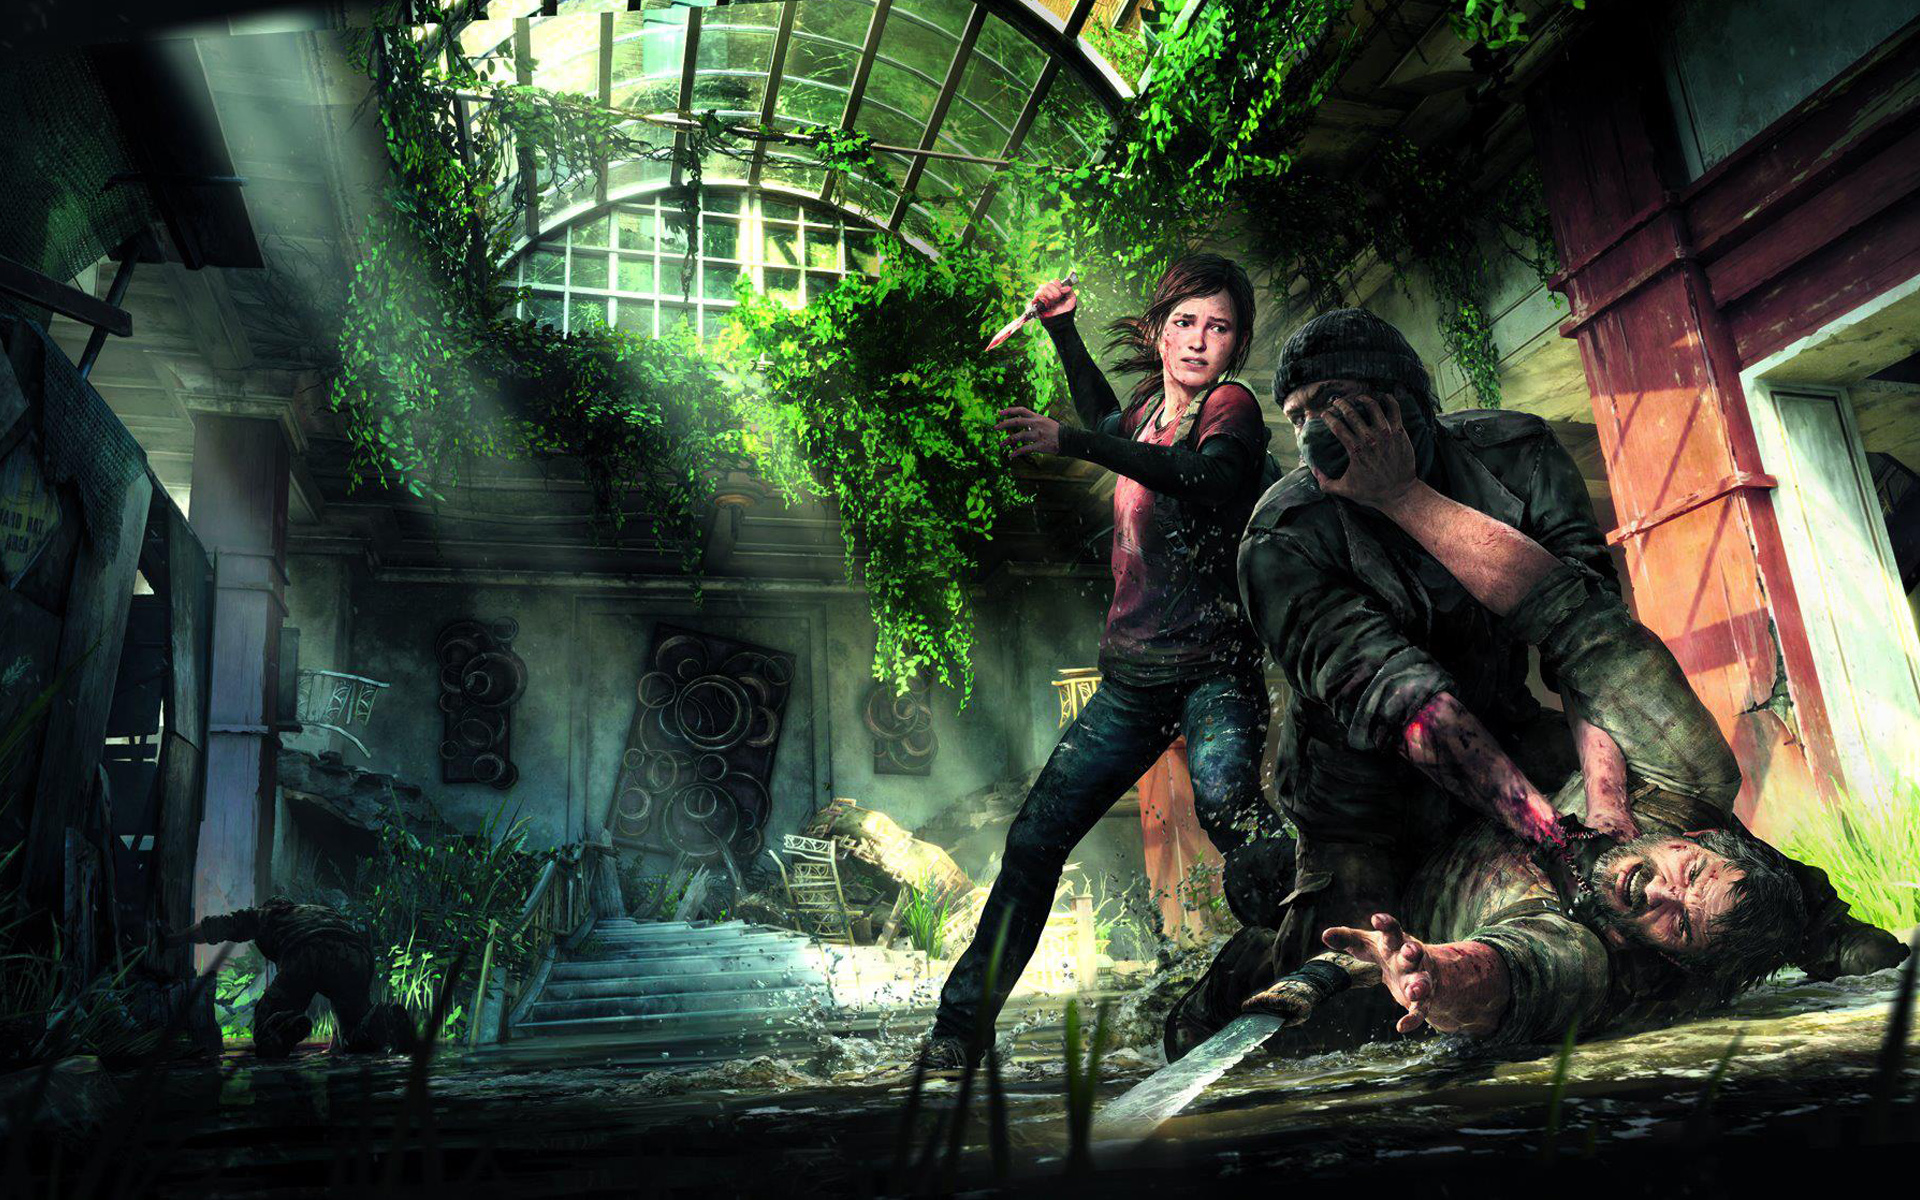 The Last Of Us Images The Last Of Us Hd Wallpaper And - 4k Last Of Us , HD Wallpaper & Backgrounds